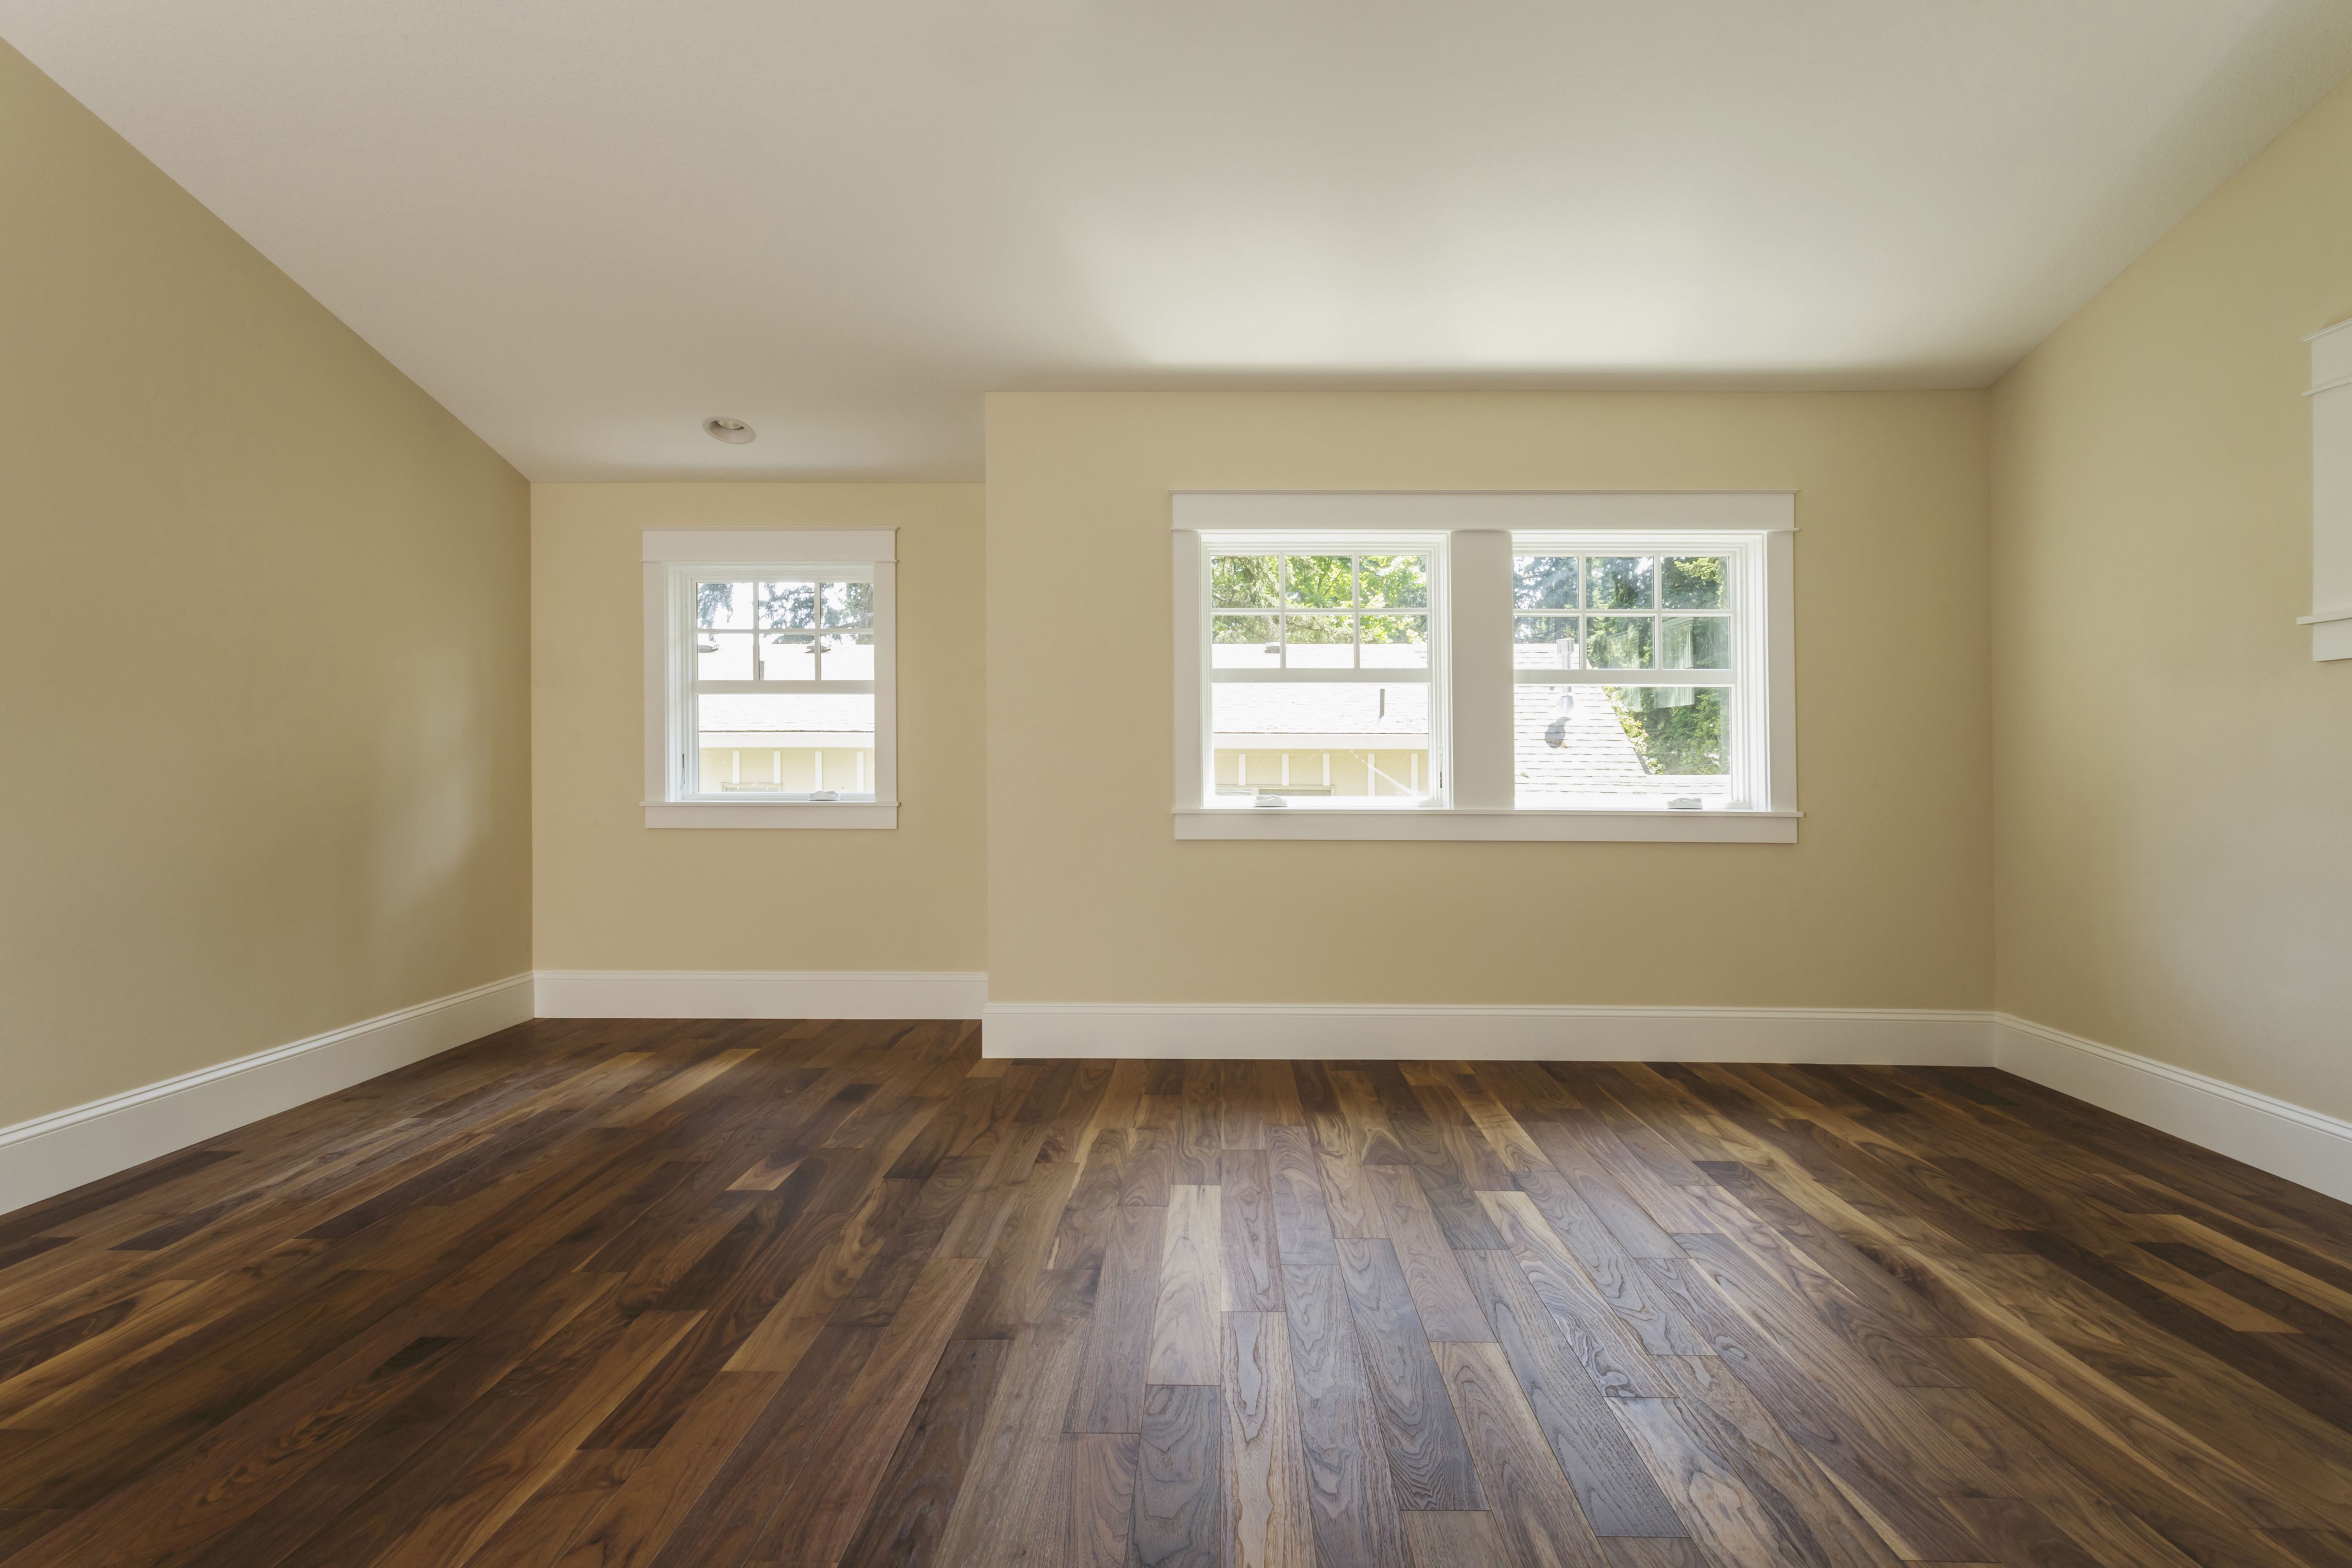 living room decorating ideas cheap modern it's easy and fast to install plank vinyl flooring